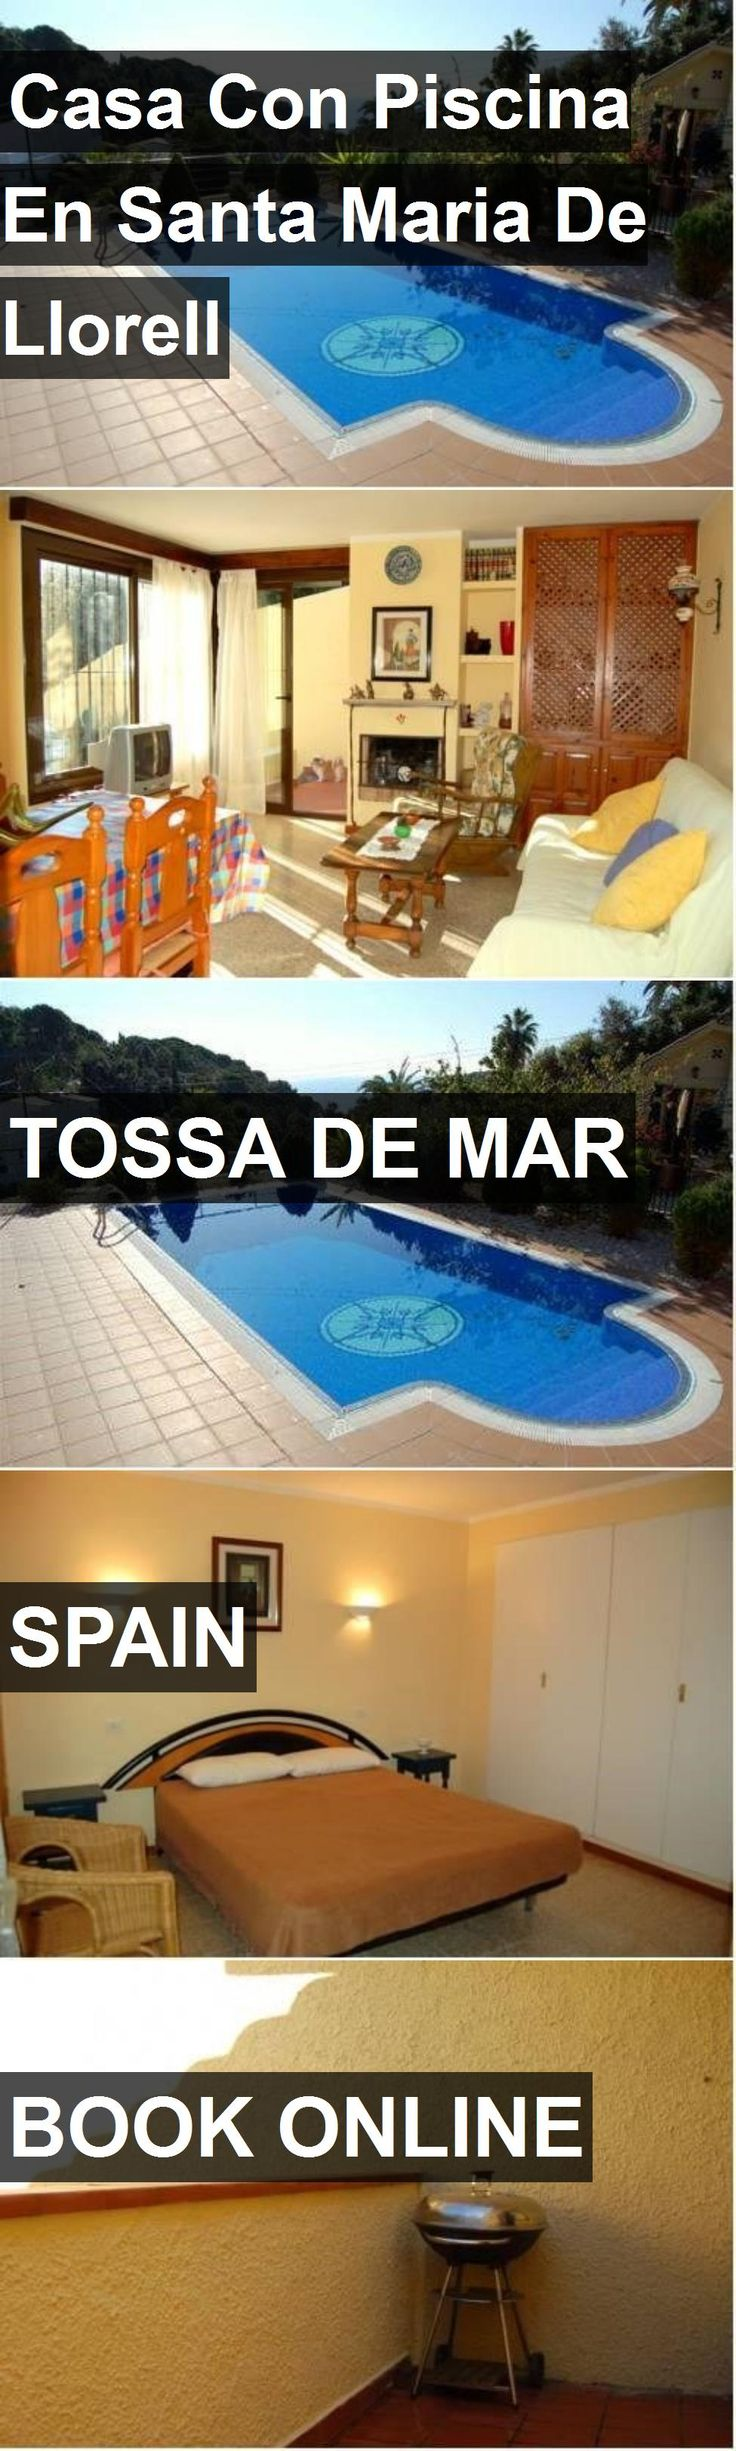 Hotel Casa Con Piscina En Santa Maria De Llorell in Tossa de Mar, Spain. For more information, photos, reviews and best prices please follow the link. #Spain #TossadeMar #travel #vacation #hotel